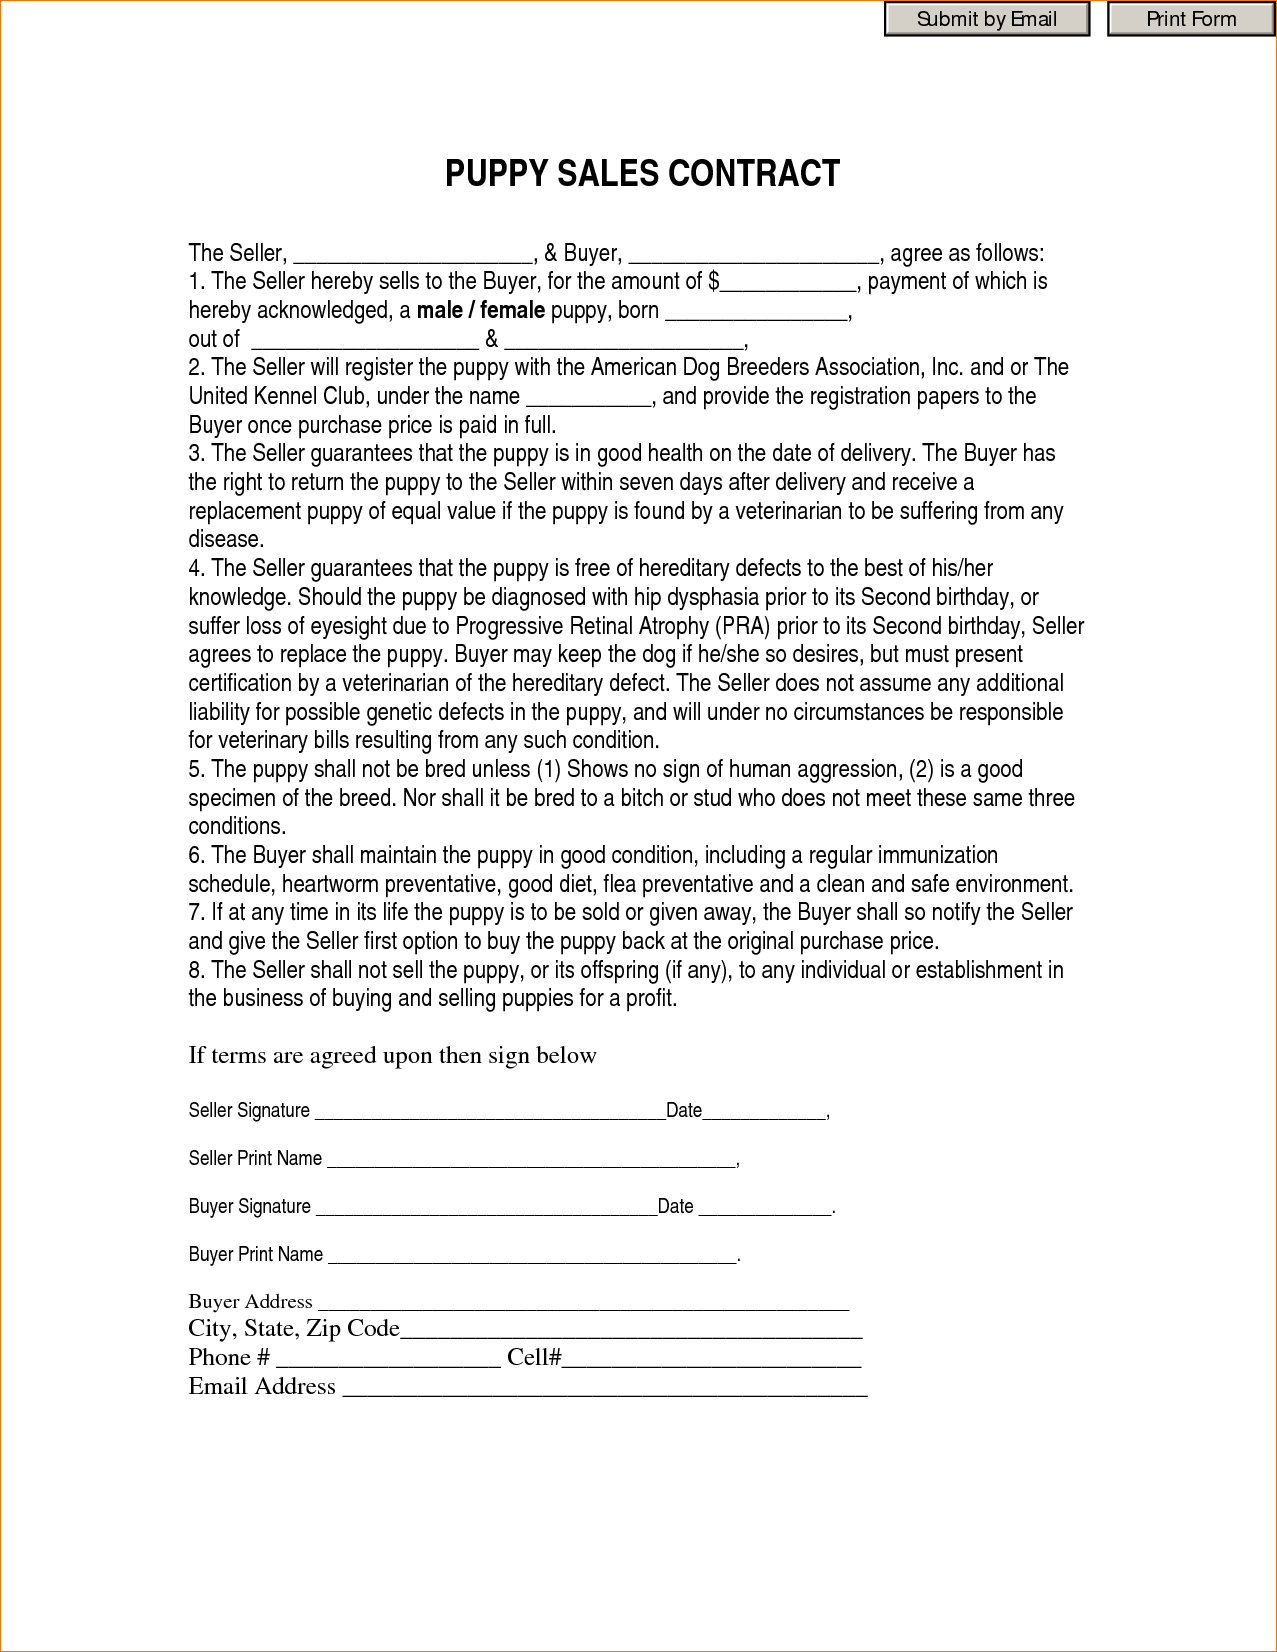 Dog Walking Agreement Form 111116 Contract Puppy Sales Contract Form - Free Printable Puppy Sales Contract